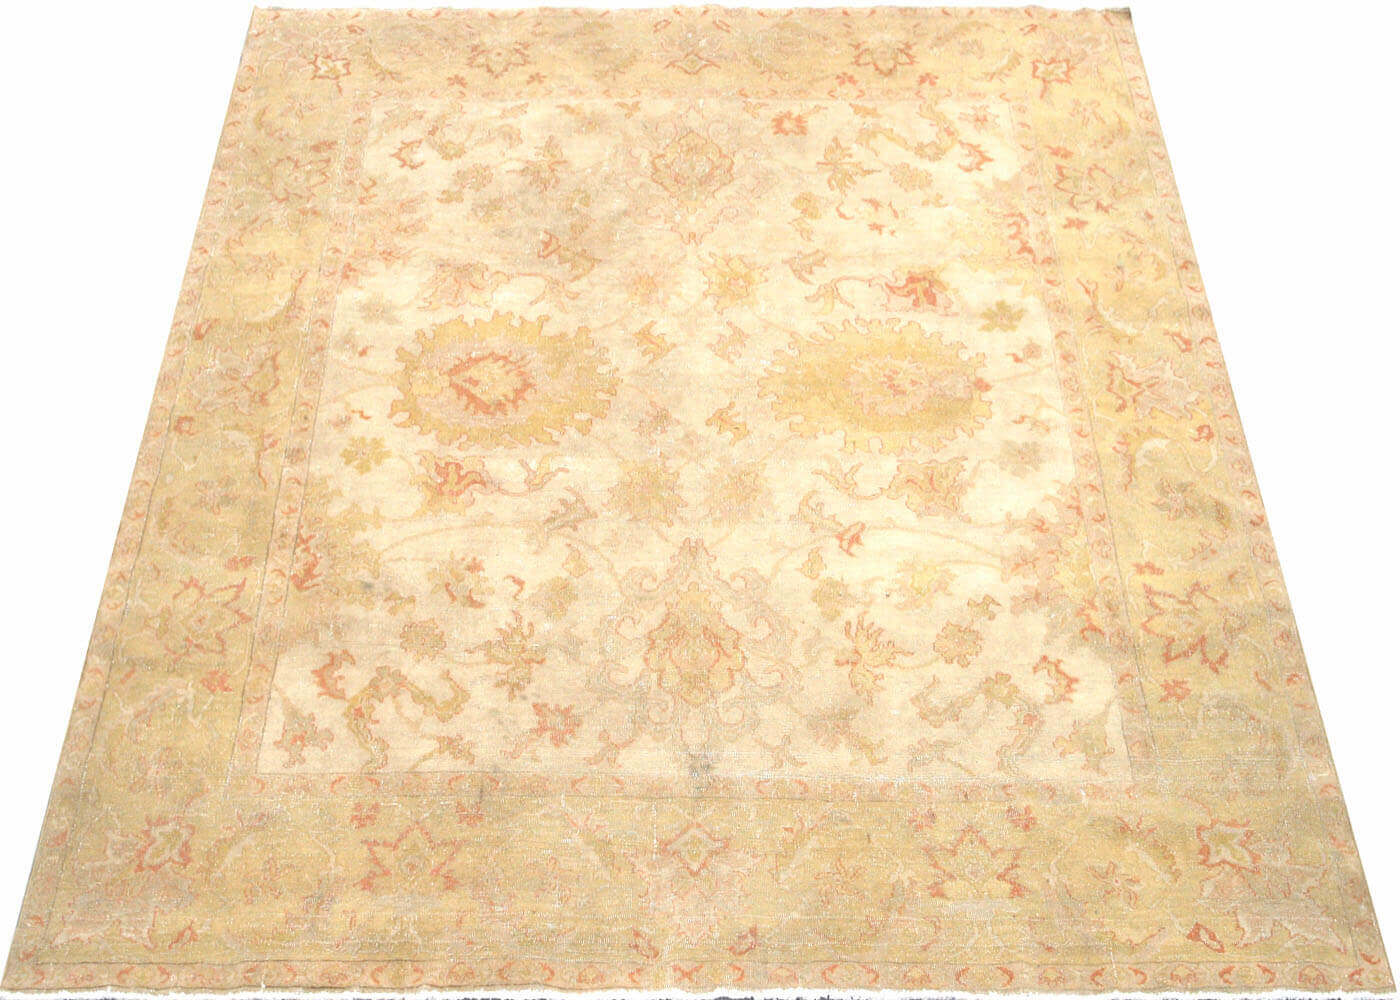 "Recently Woven Egyptian Sultanabad Rug - 8'6"" x 8'7"""